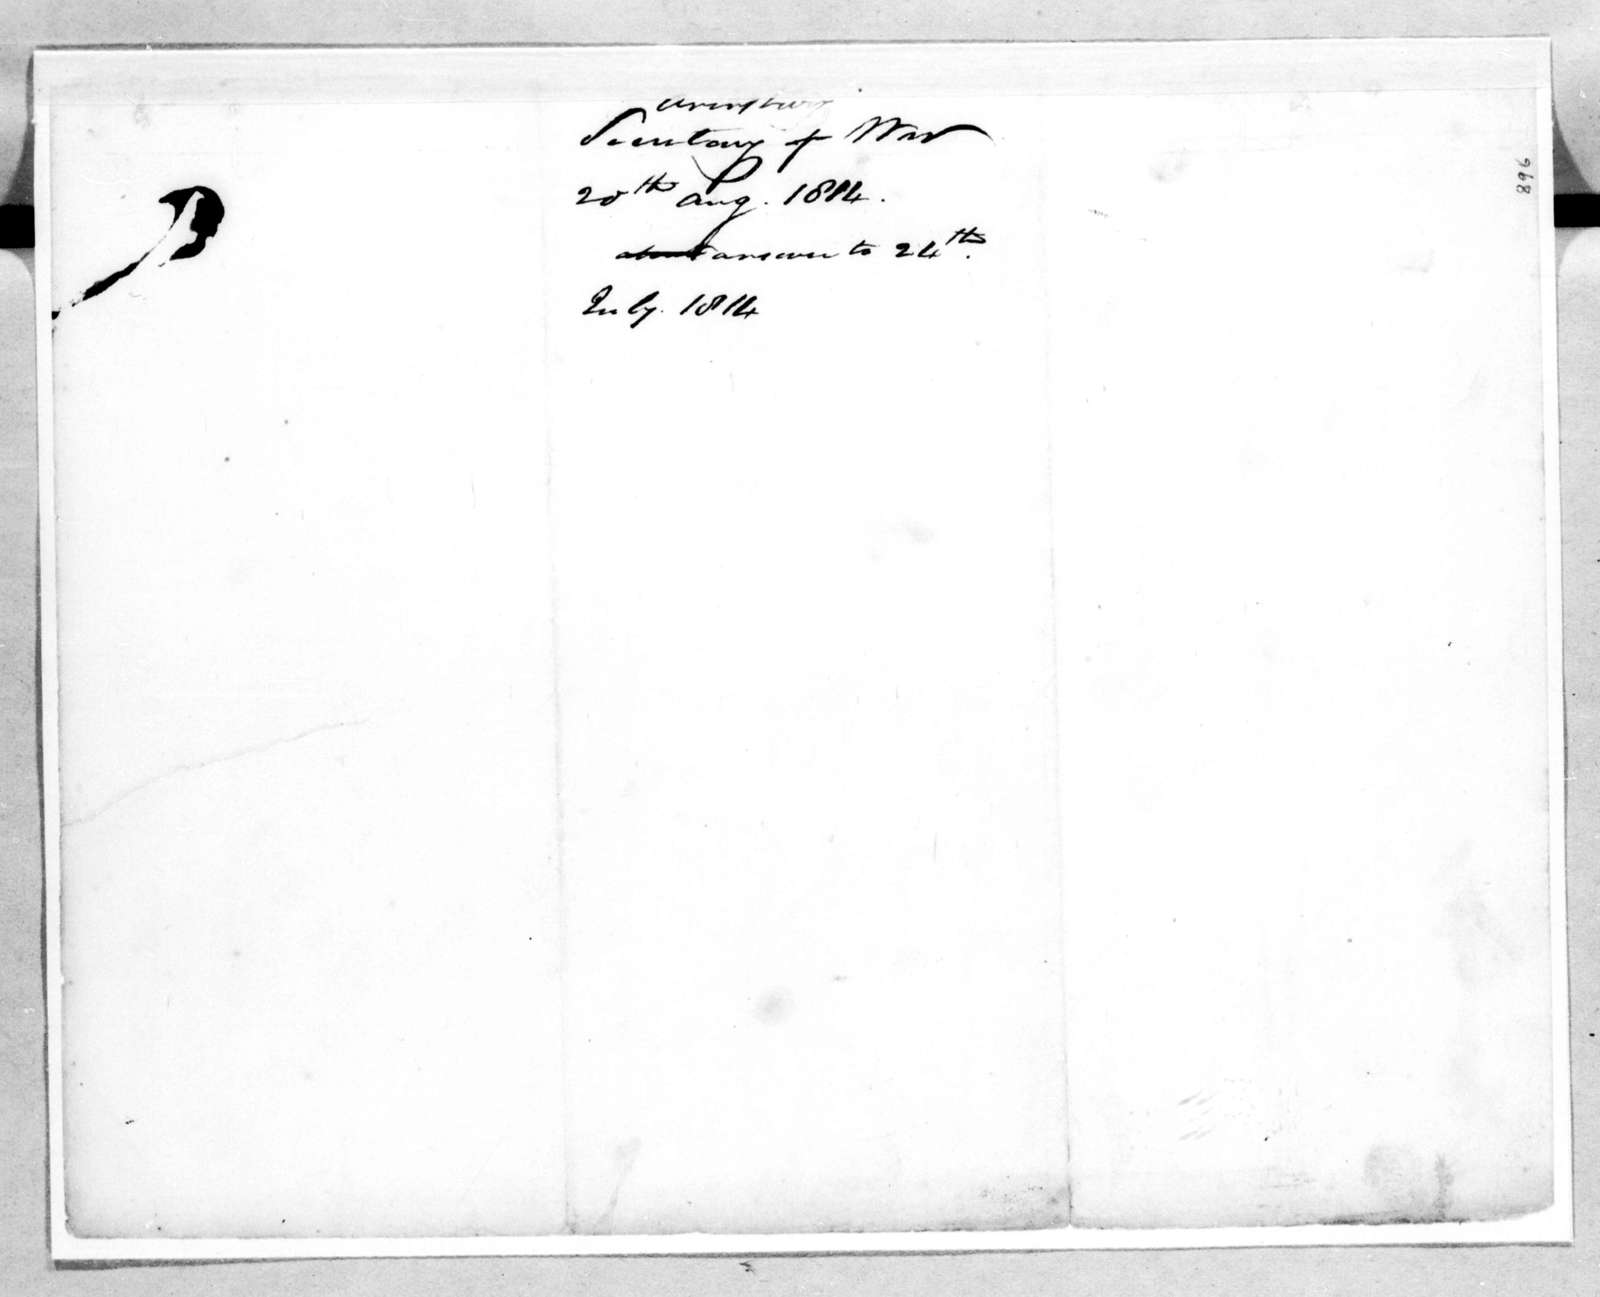 John Armstrong to Andrew Jackson, August 20, 1814